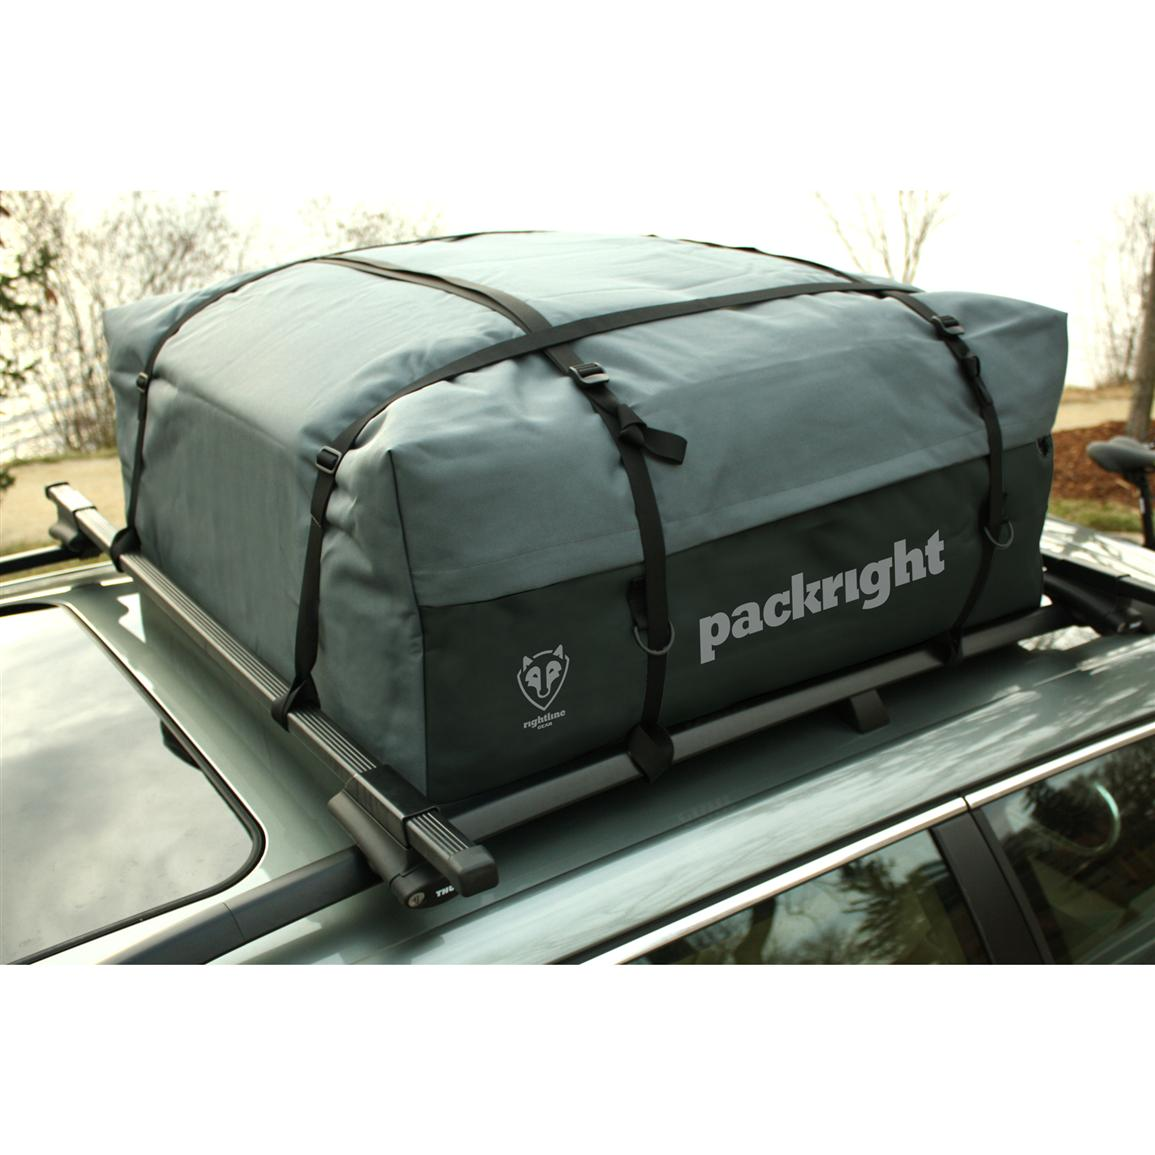 Packright® Sport 1 Car Top Carrier